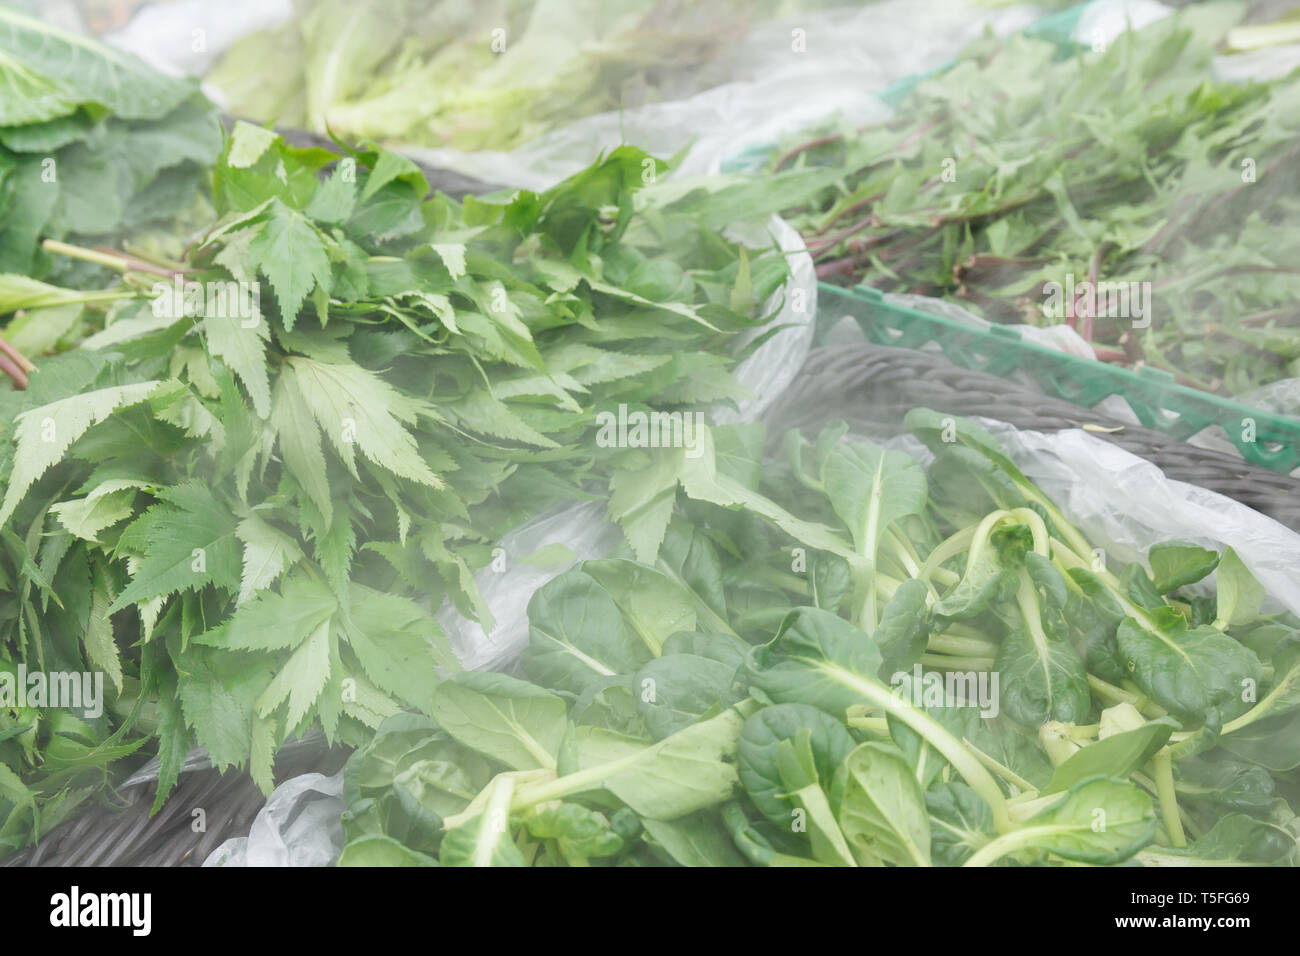 many kinds of vegetables in refrigerator for veggies that keeps food fresh with vapor - Stock Image